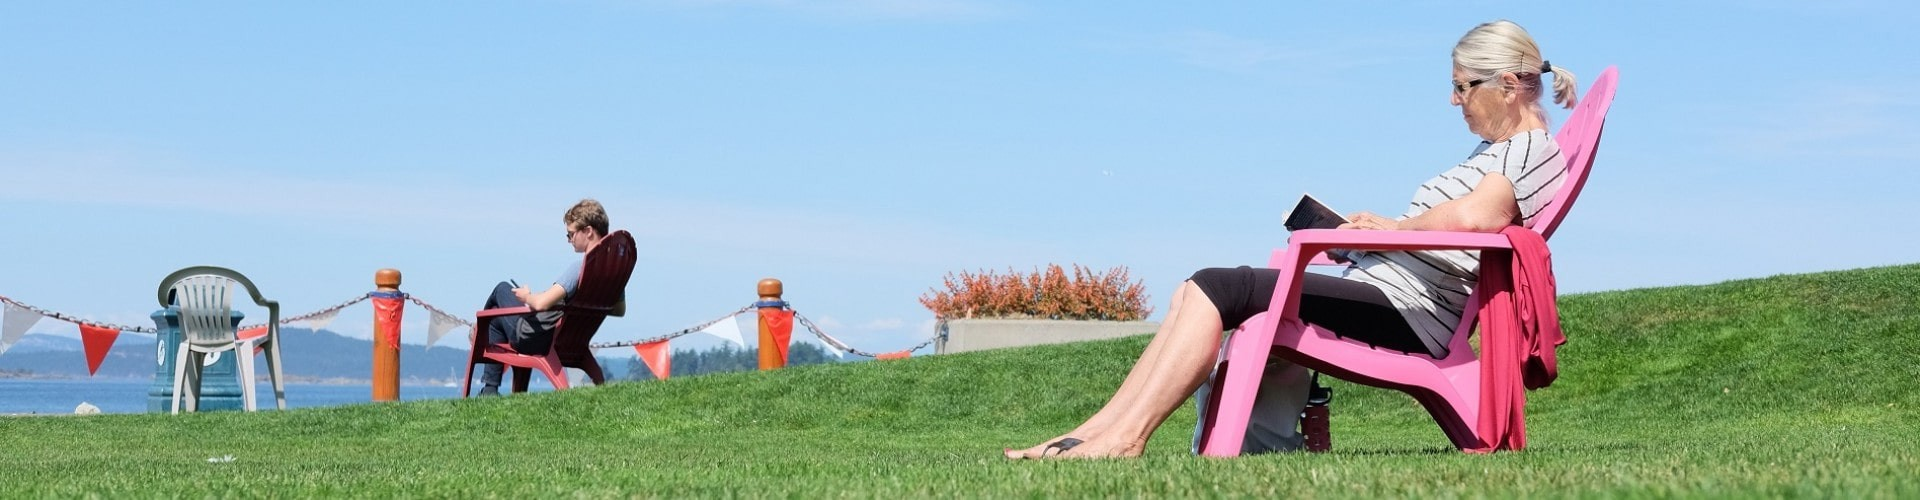 senior woman sitting on a chair on grass overlooking the ocean